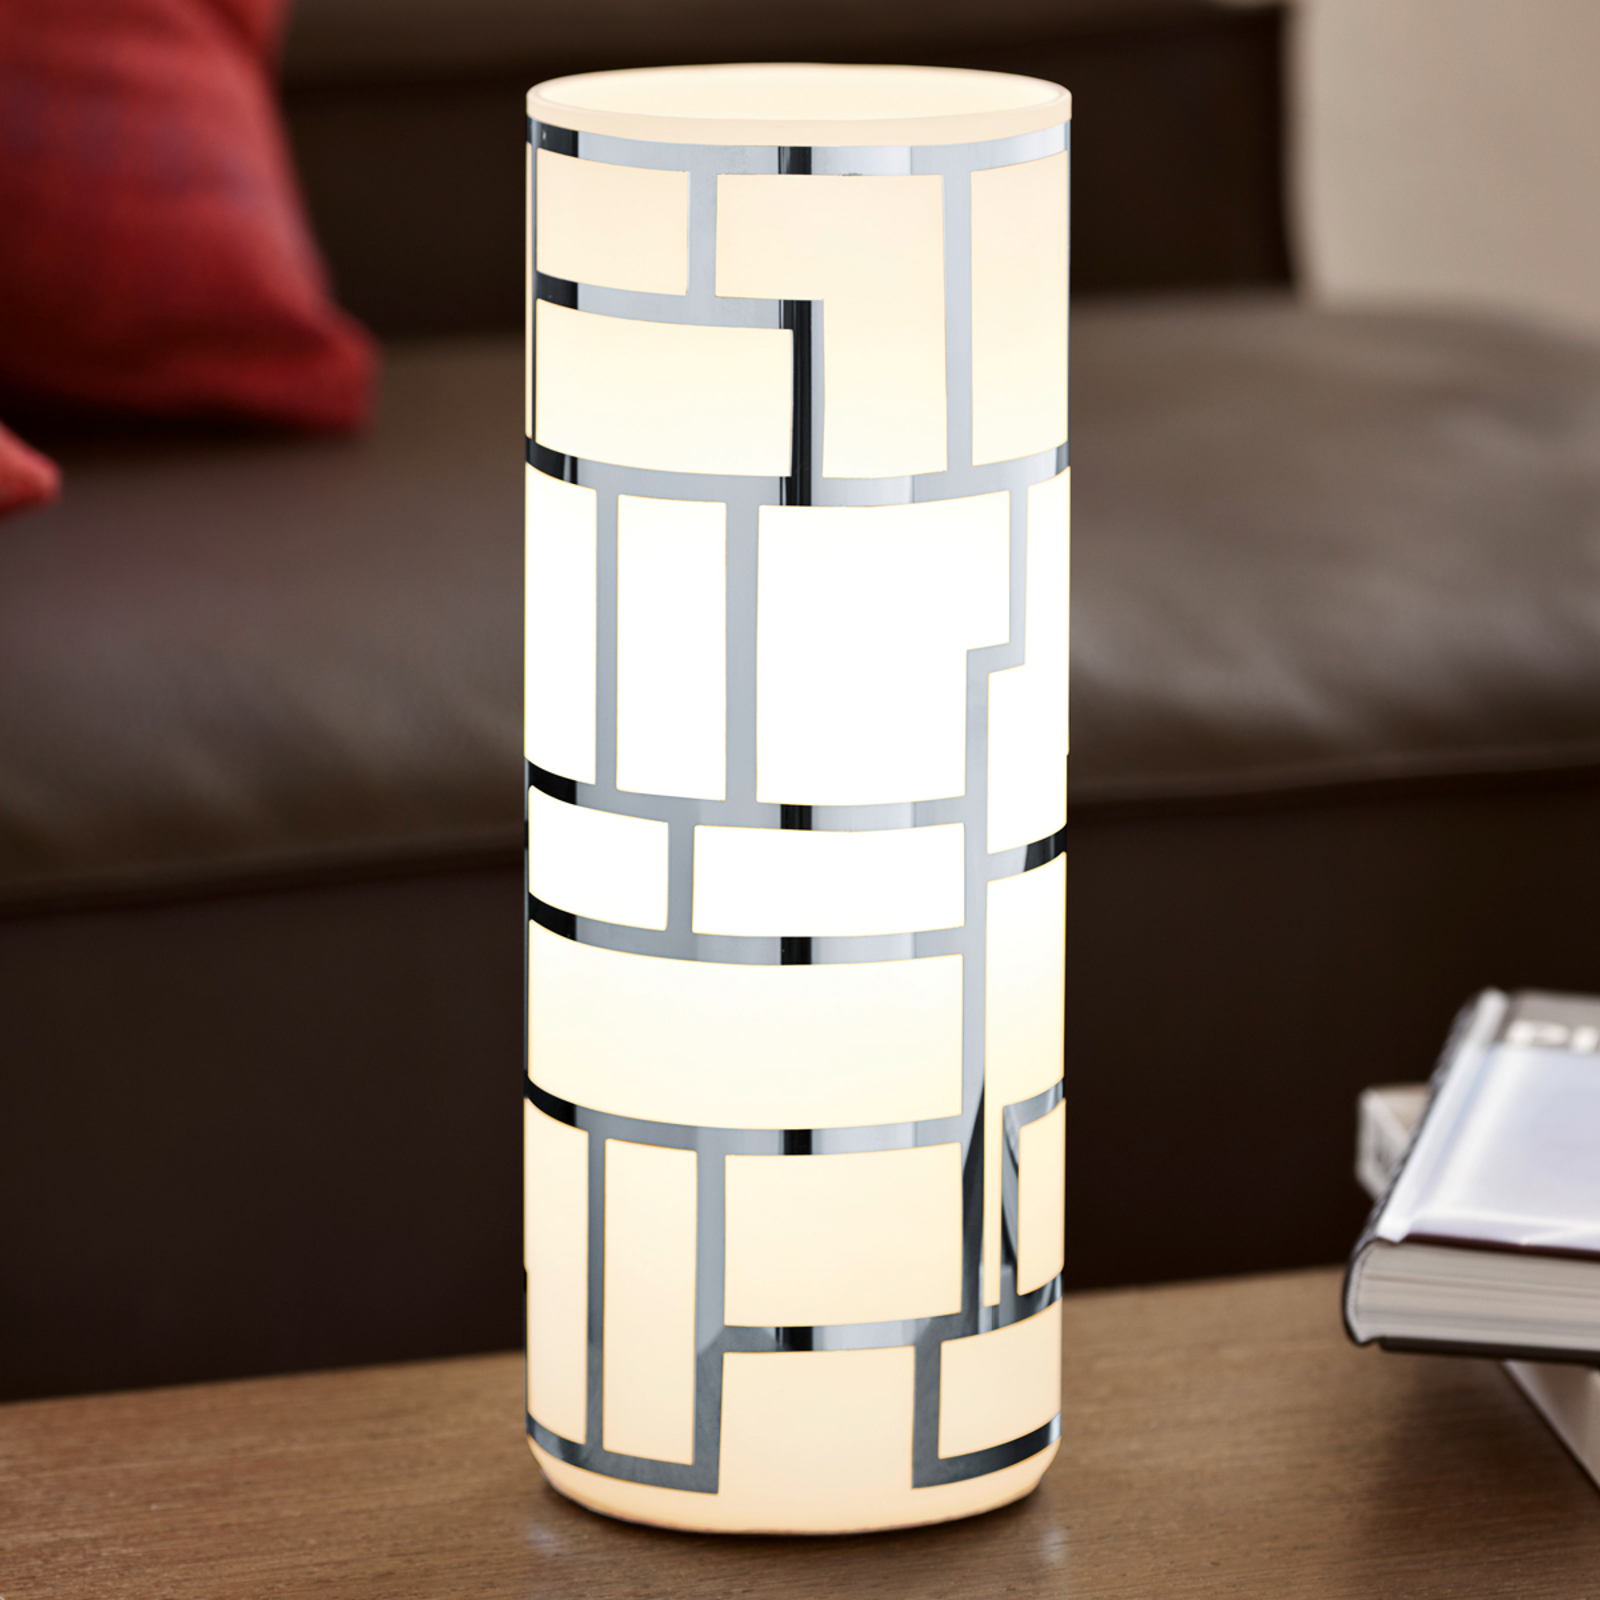 Cylindrical Bayman table lamp_3031649_1